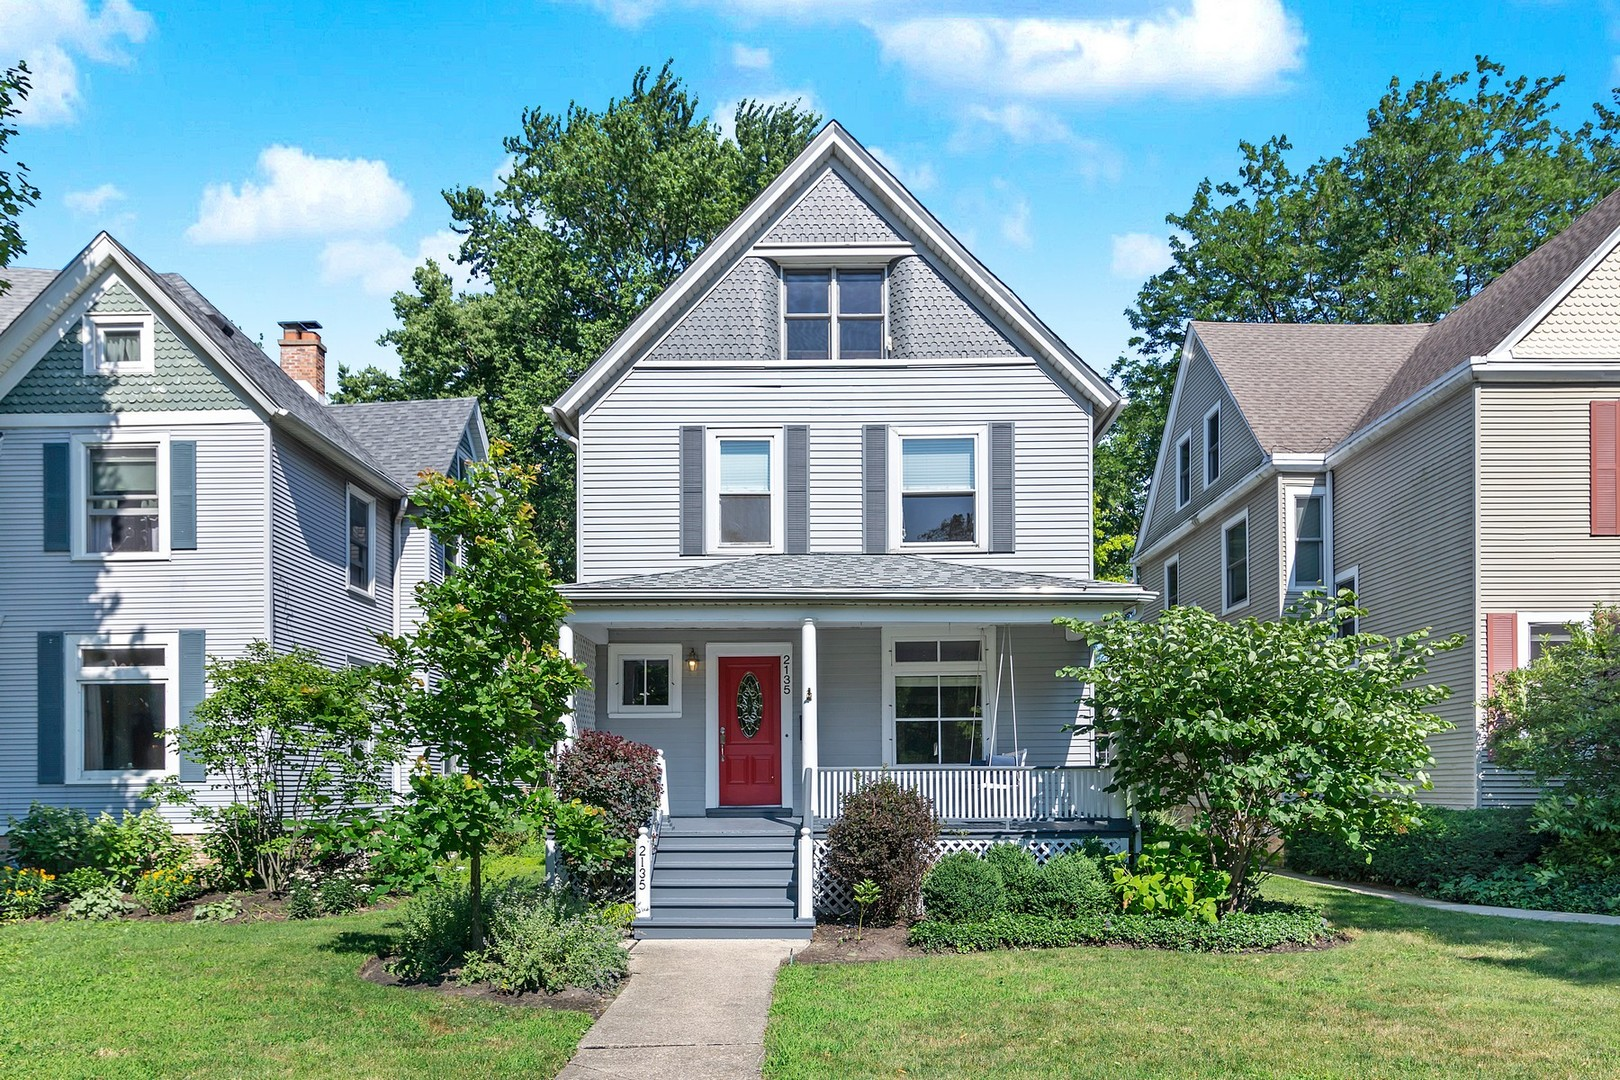 One of Evanston 6 Bedroom Homes for Sale at 2135 Sherman Avenue